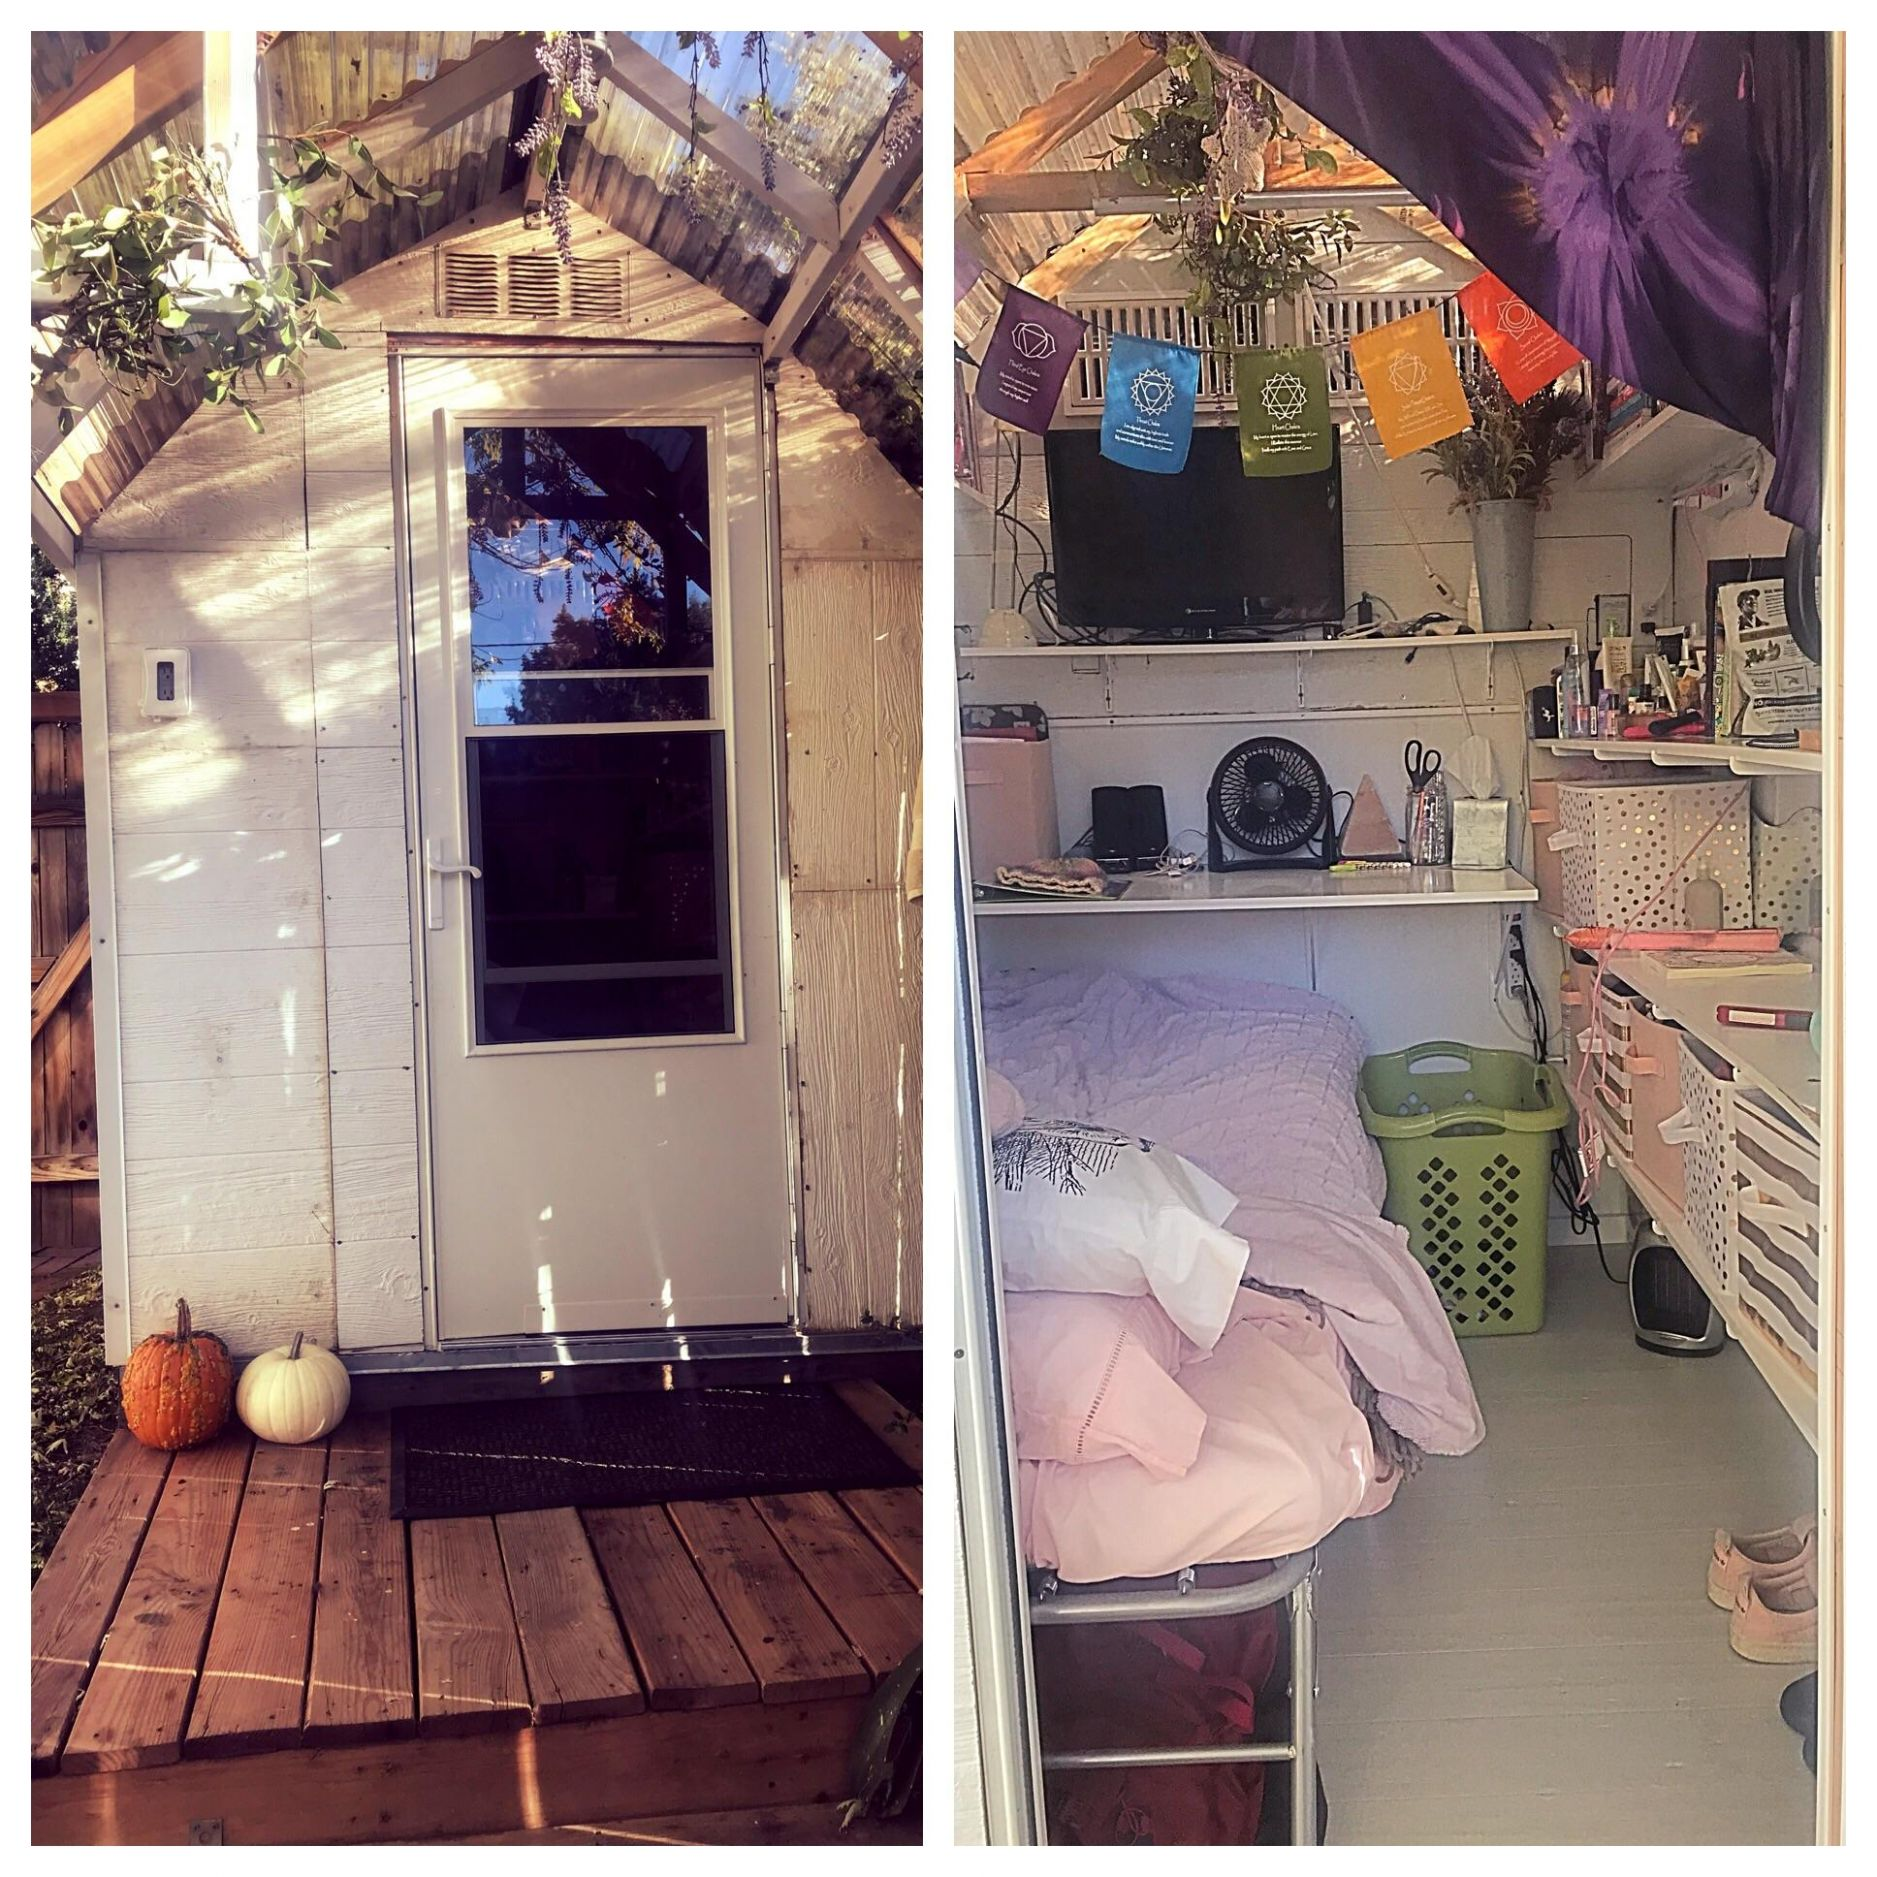 I moved into a fixed up shed after a TBI to simplify life in pre ..